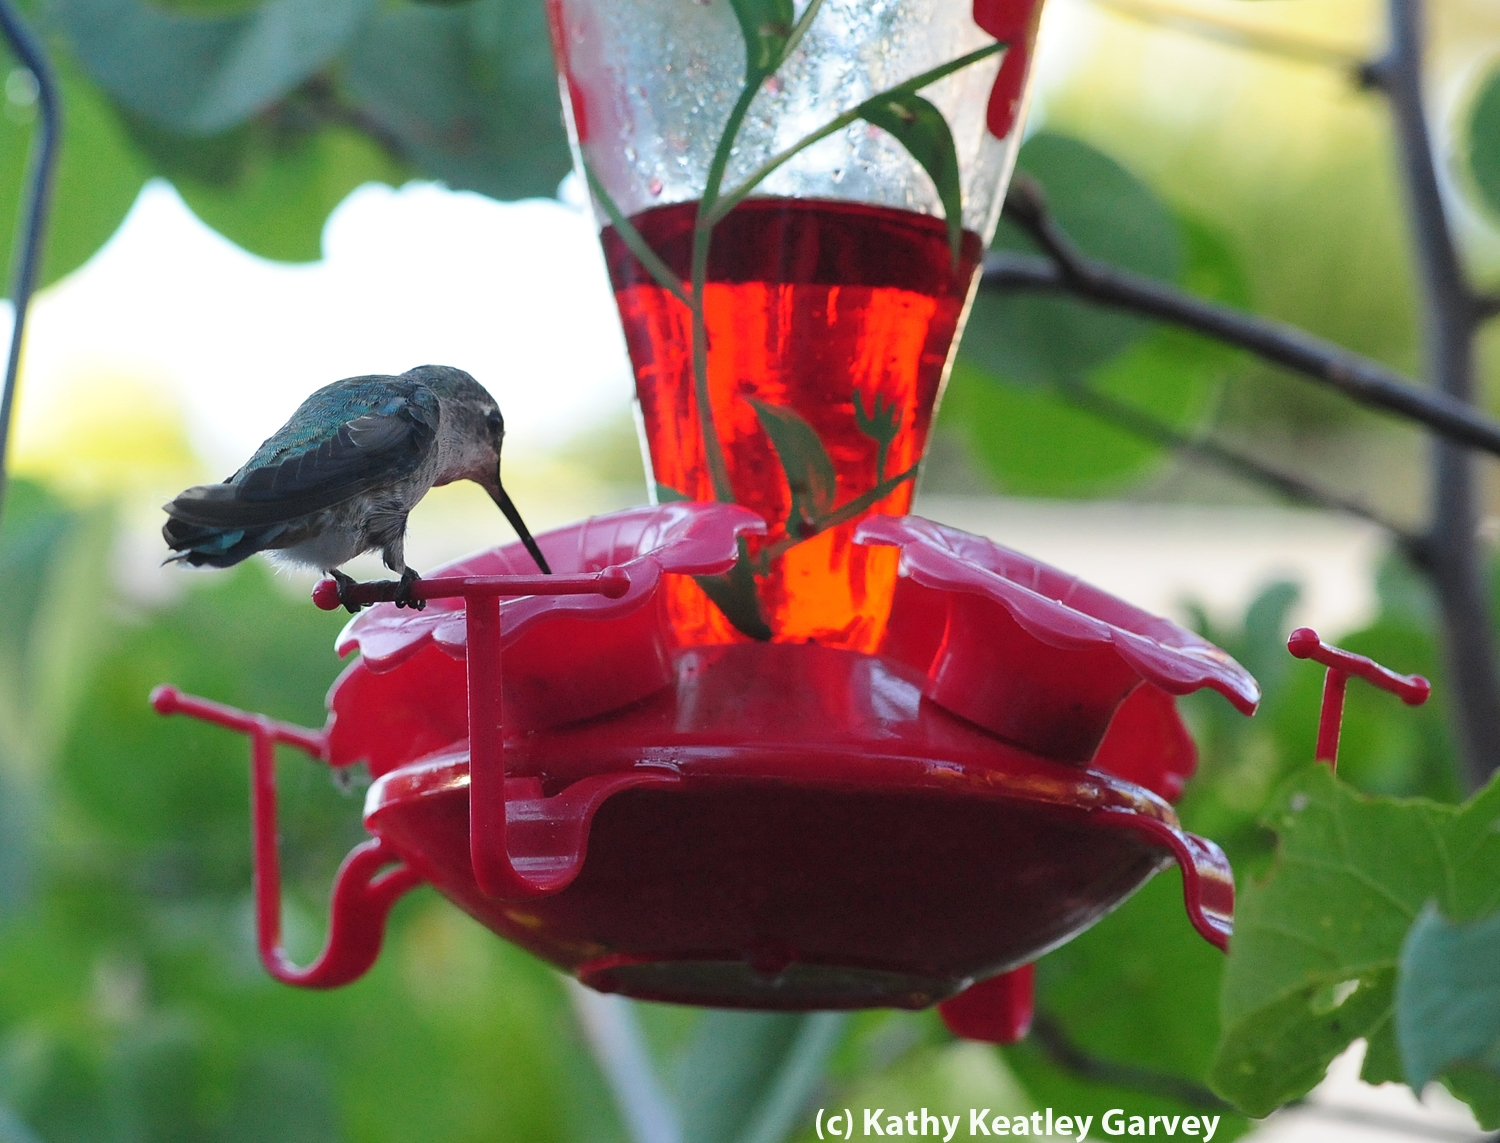 Hummers Can Reach This Syrup But The Bees Cannot Photo By Kathy Keatley Garvey